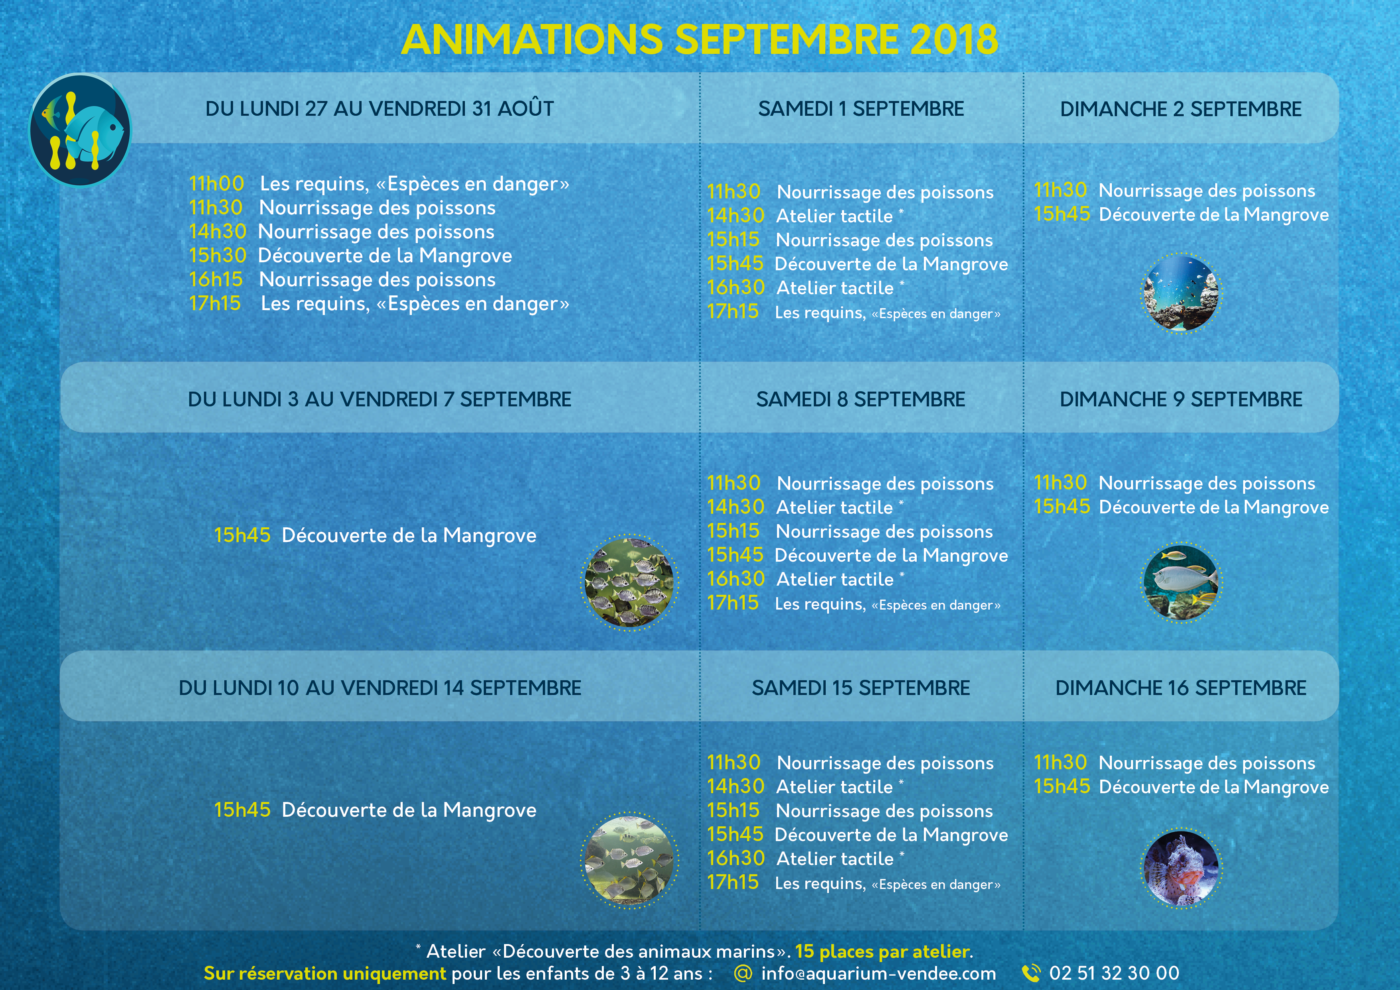 ANIMATIONS 1 SEPT-16 SEPT SANS PROMO